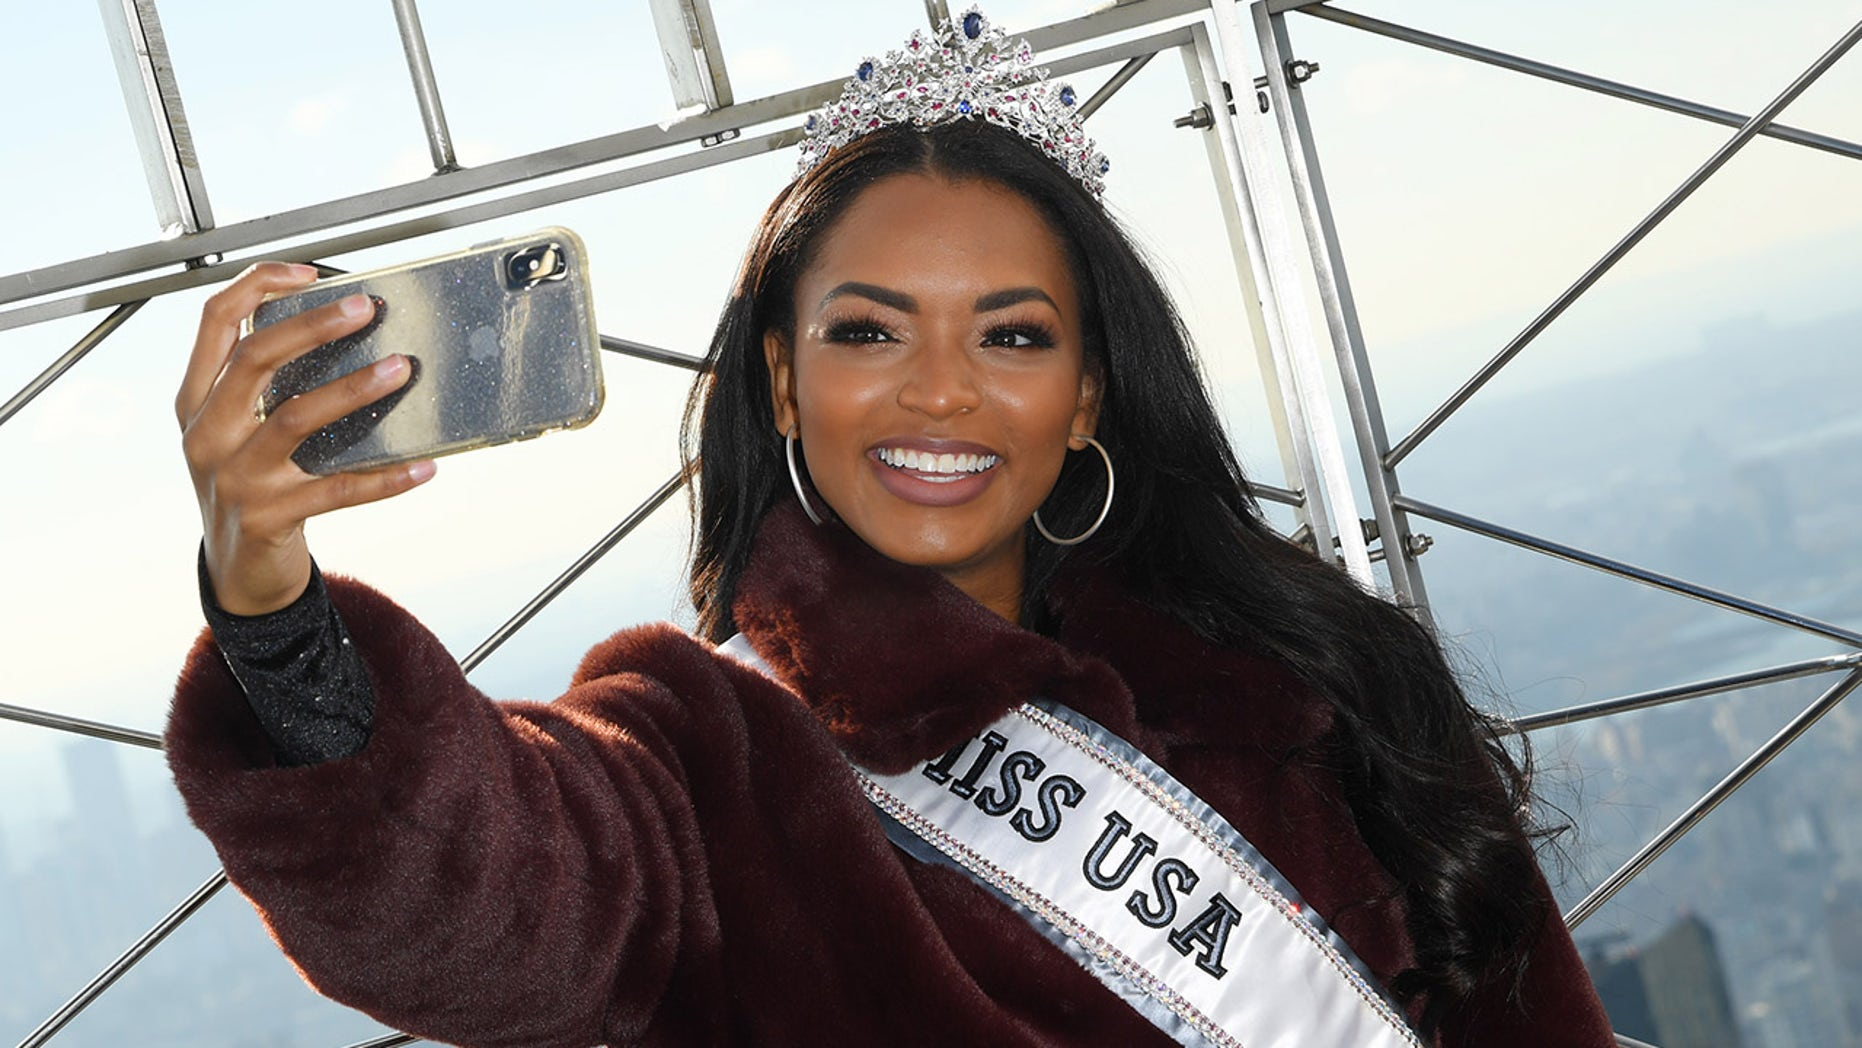 Miss USA Asya Branch on representing the US at Miss Universe: 'I'm proud to be a part of the greatest nation'